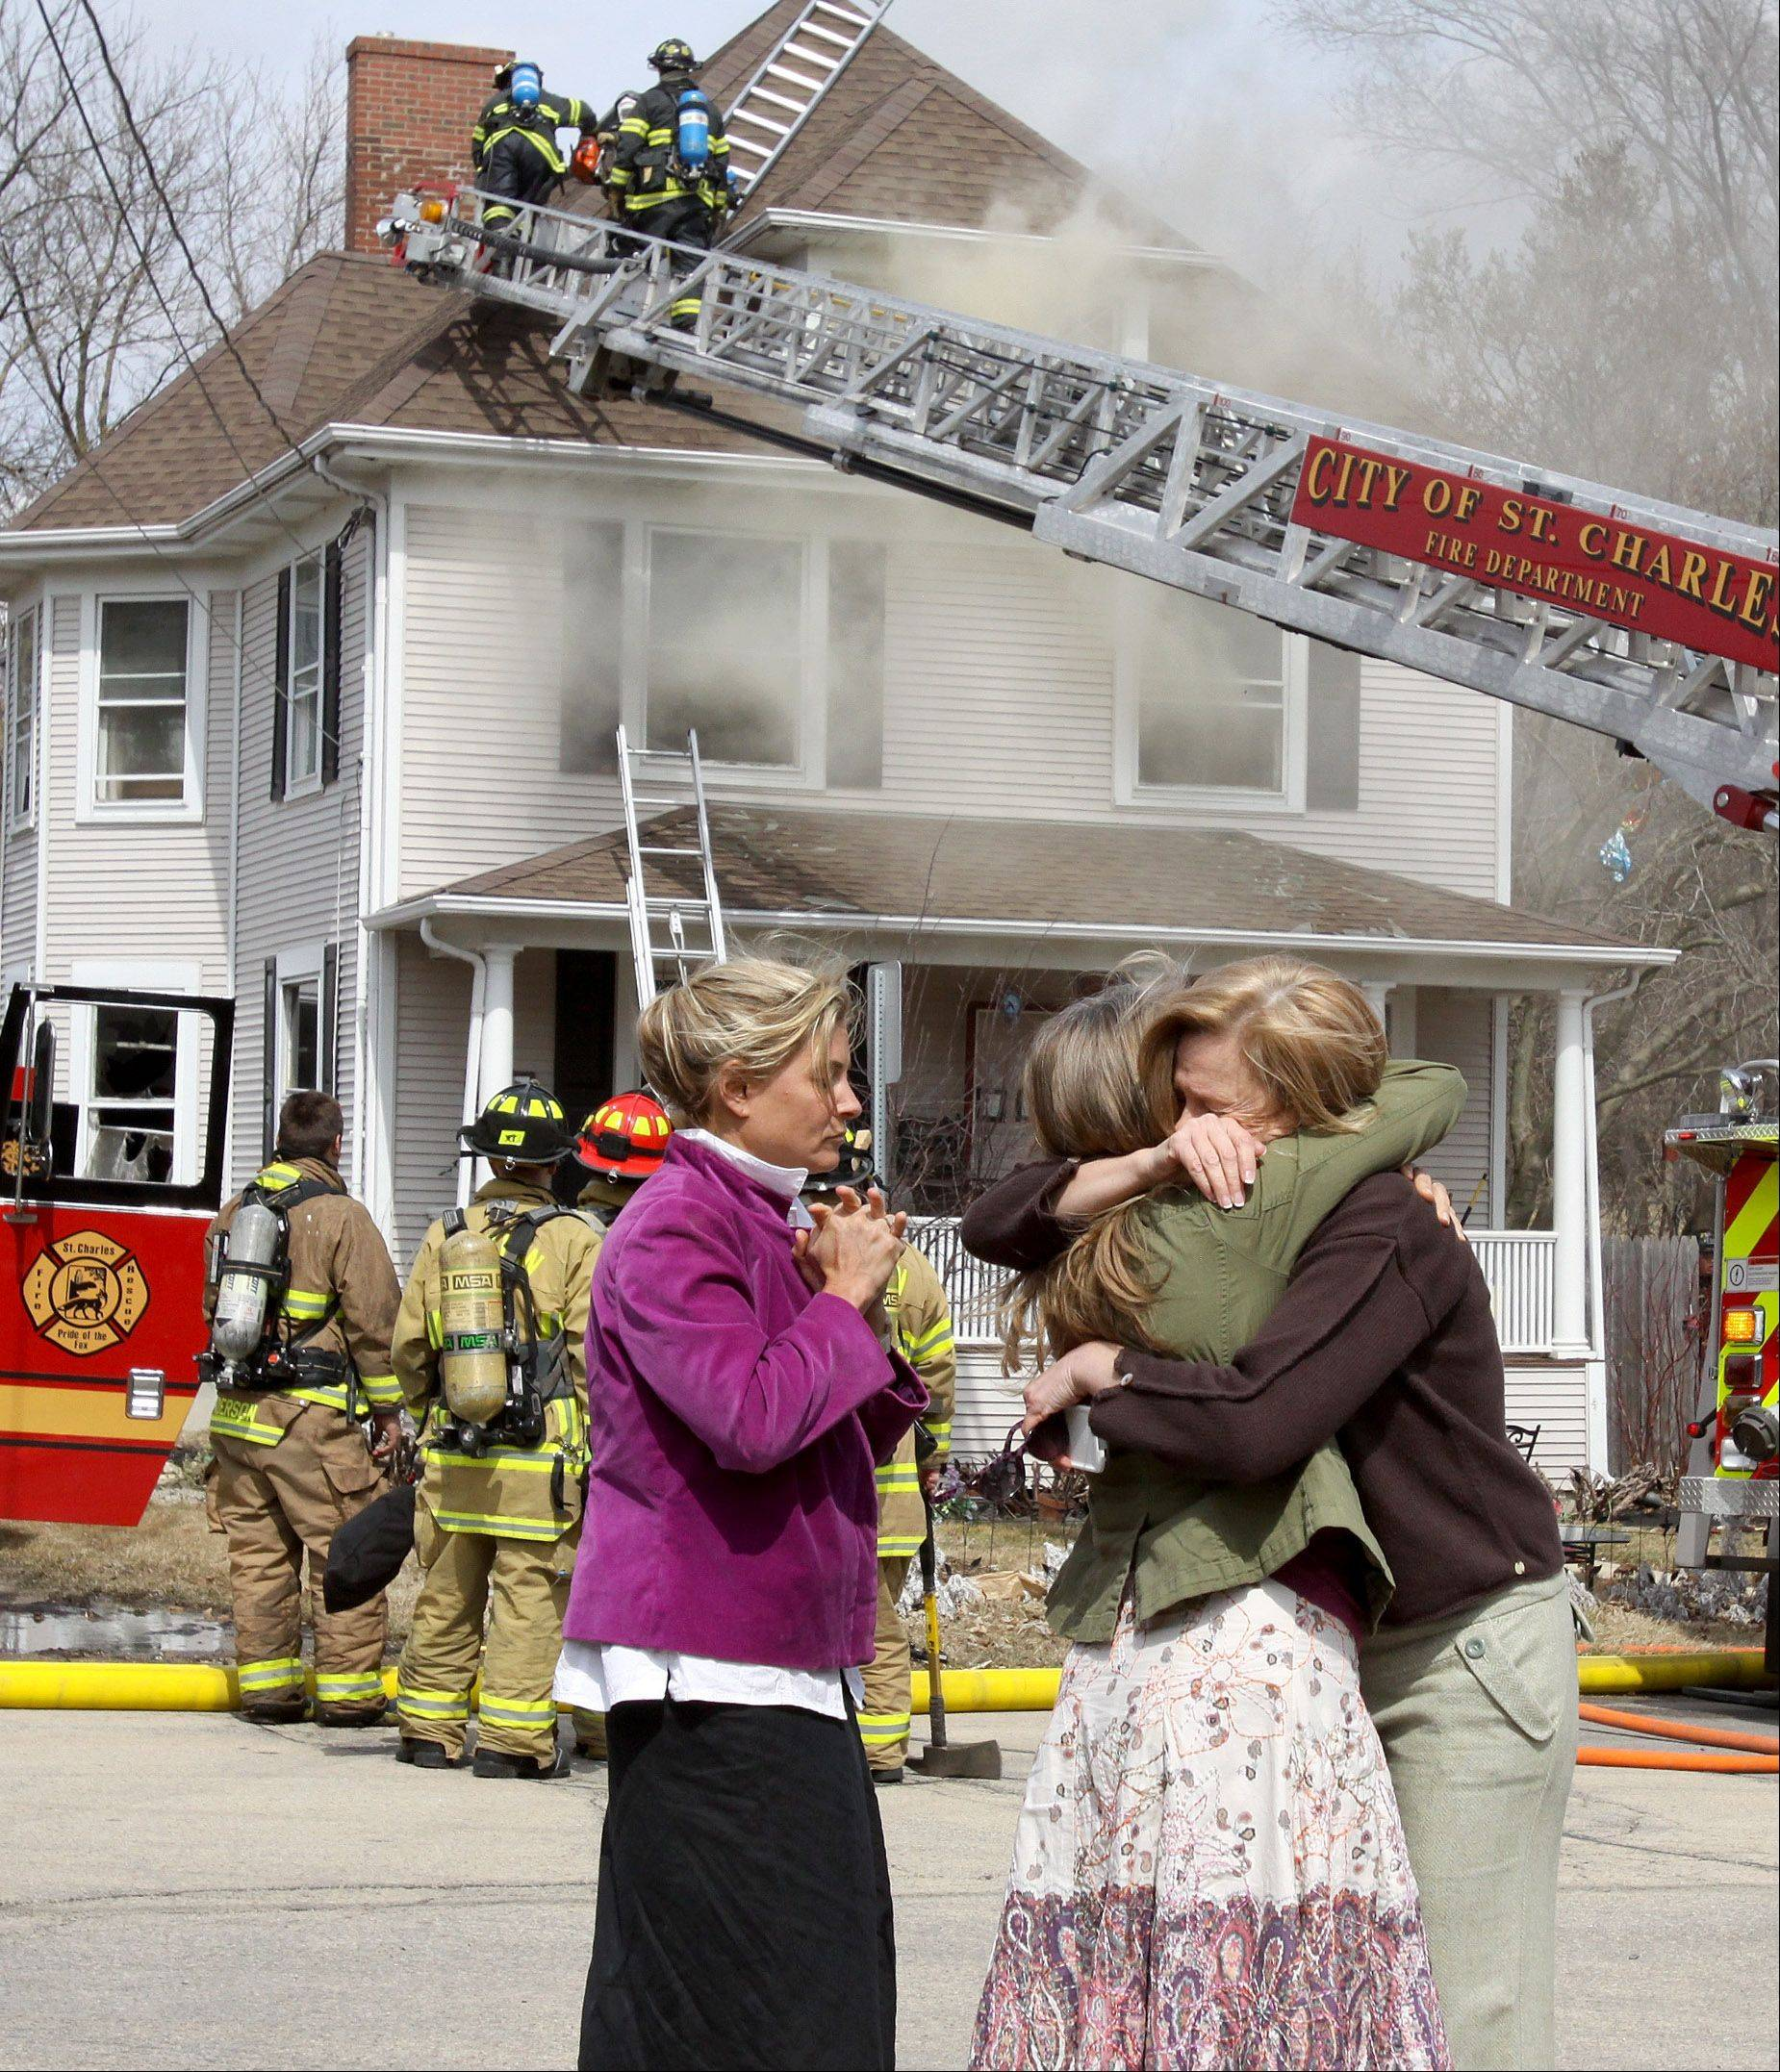 The owner of St. Charles home damaged by fire Sunday, right, is comforted by friends as firefighters battle the blaze on the 600 block of State Avenue in St. Charles.